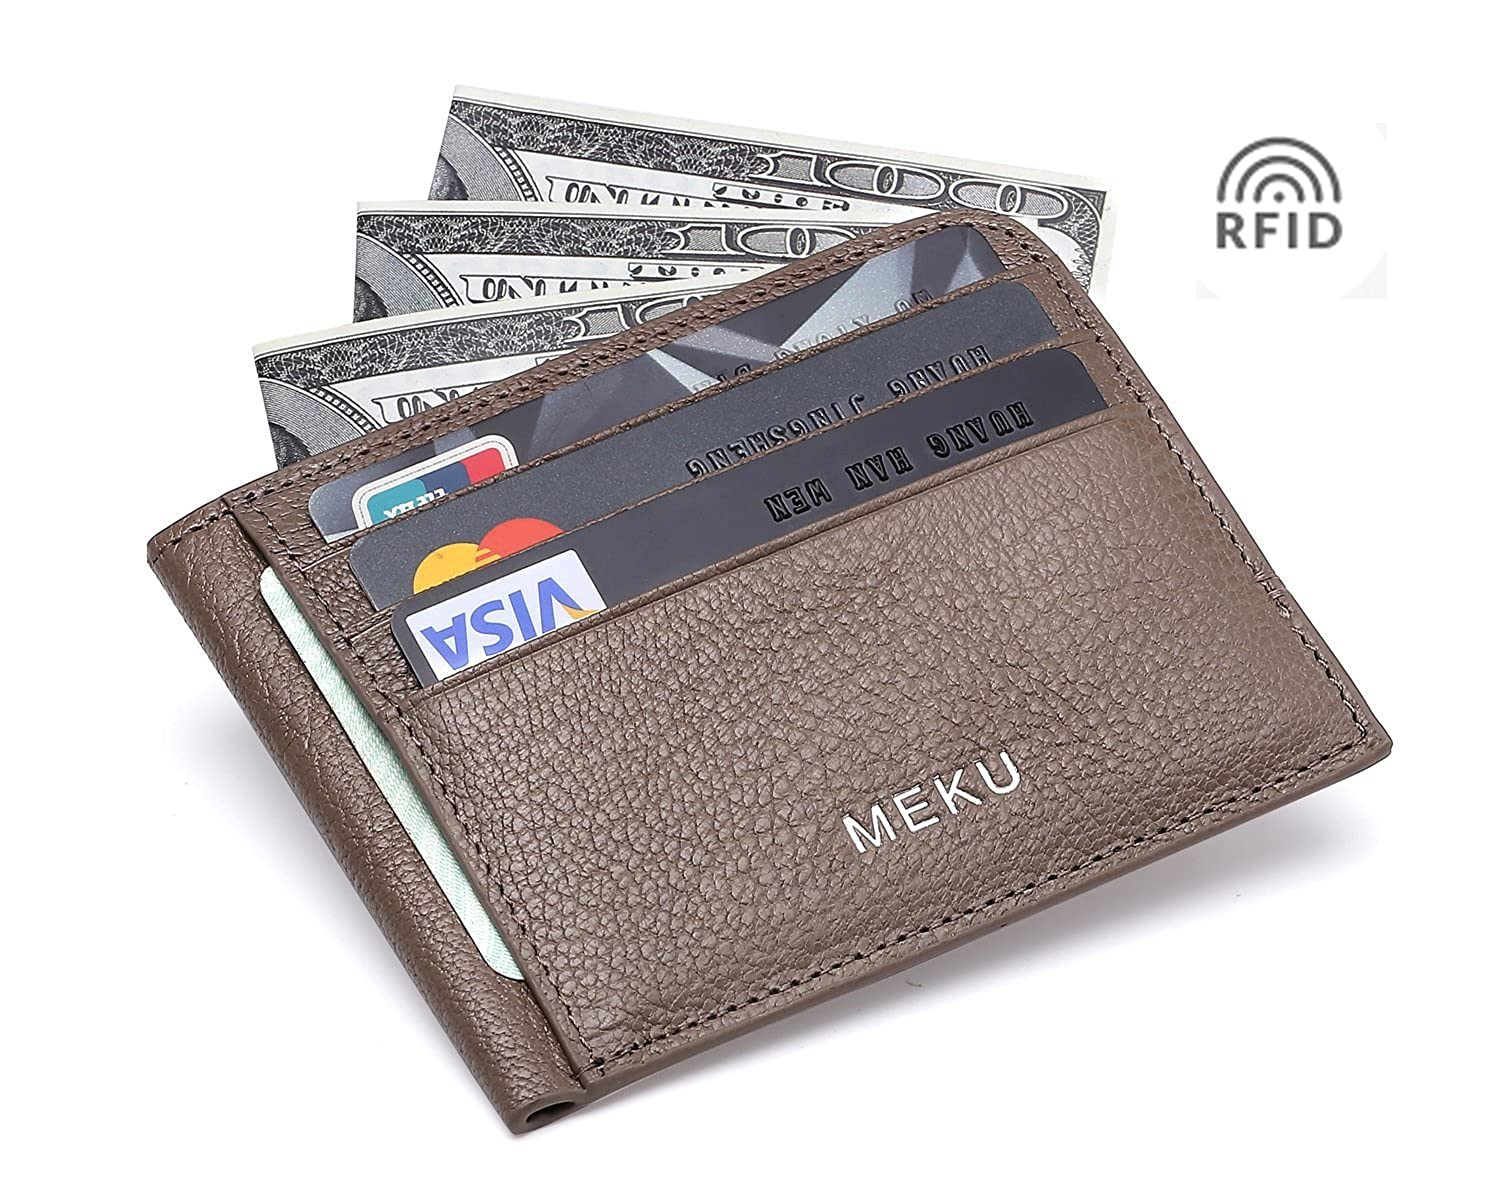 Slim Wallet - Minimalist Front Pocket Wallet - Leather Money Clip Wallet Card Holders RFID Blocking LCC007